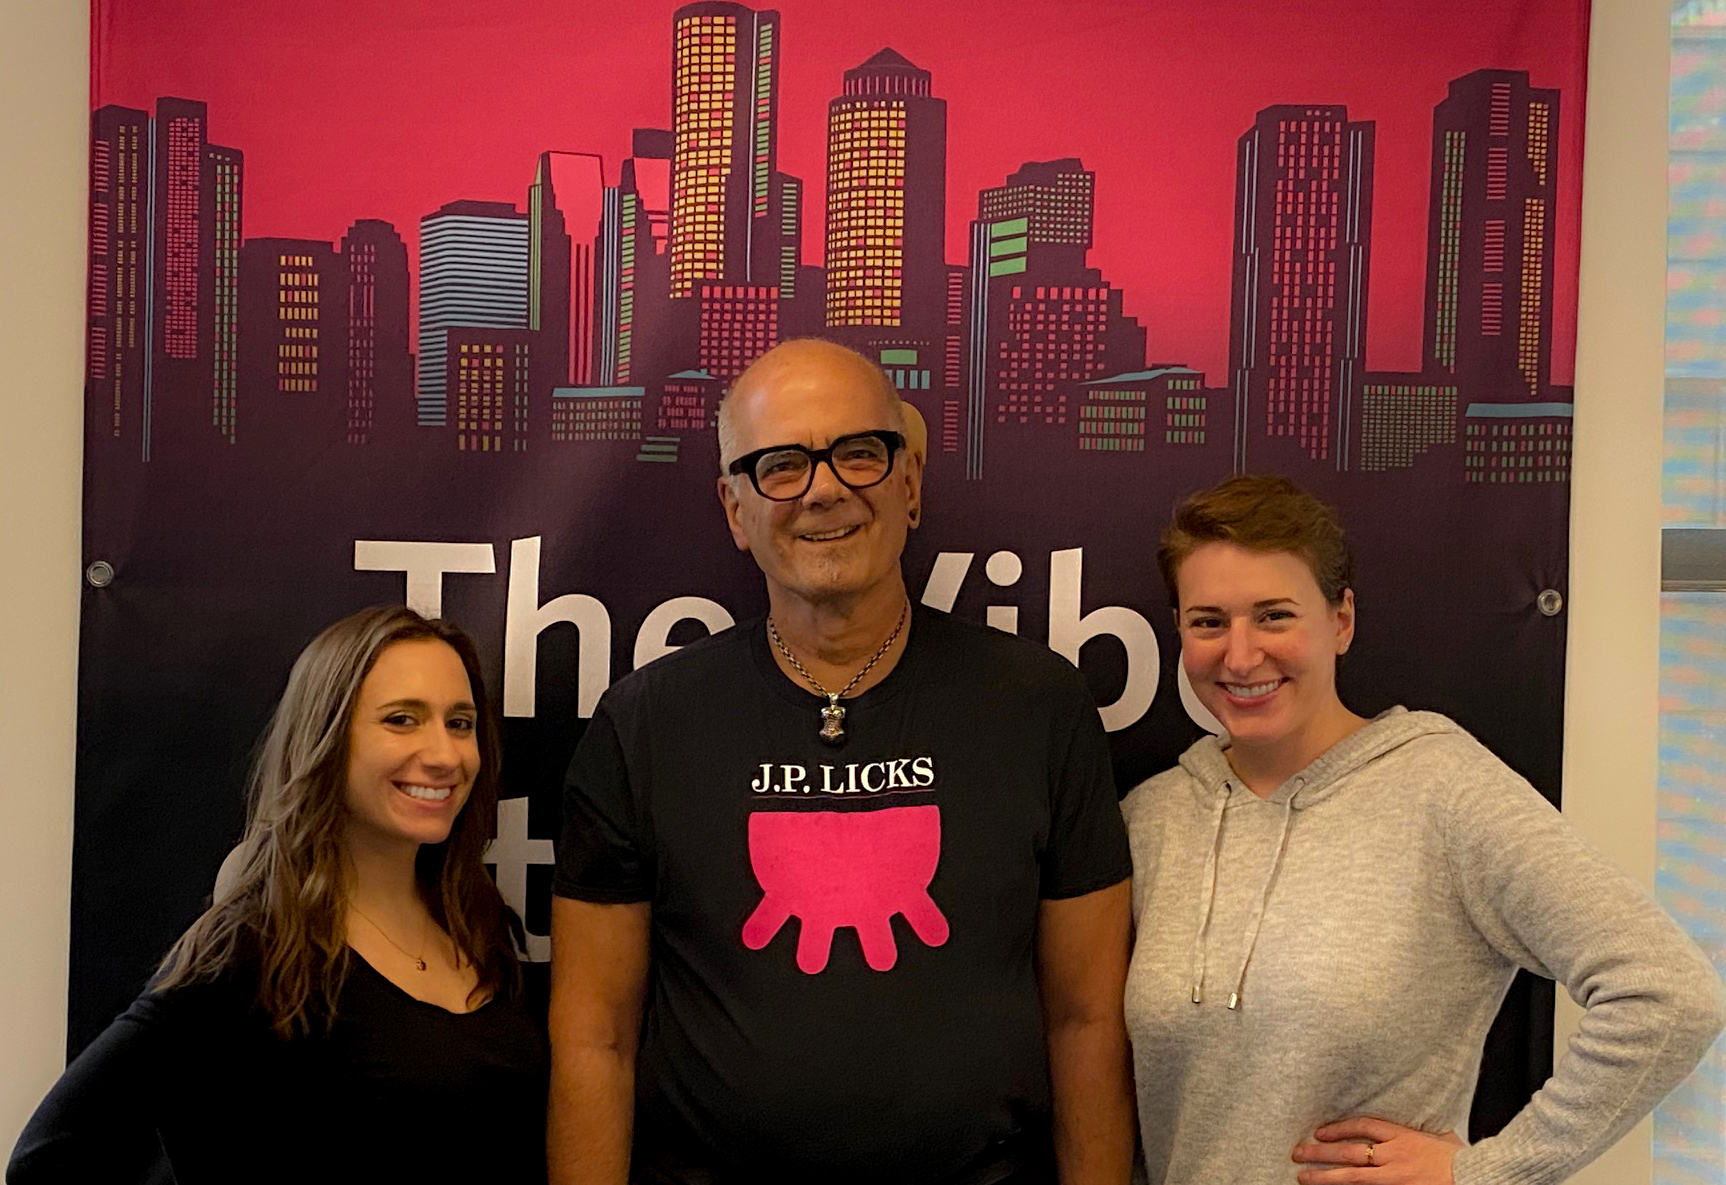 From left: Ashley Jacobs, J.P. Licks owner Vincent Petryk and Kali Foxman (Photo: Miriam Anzovin)